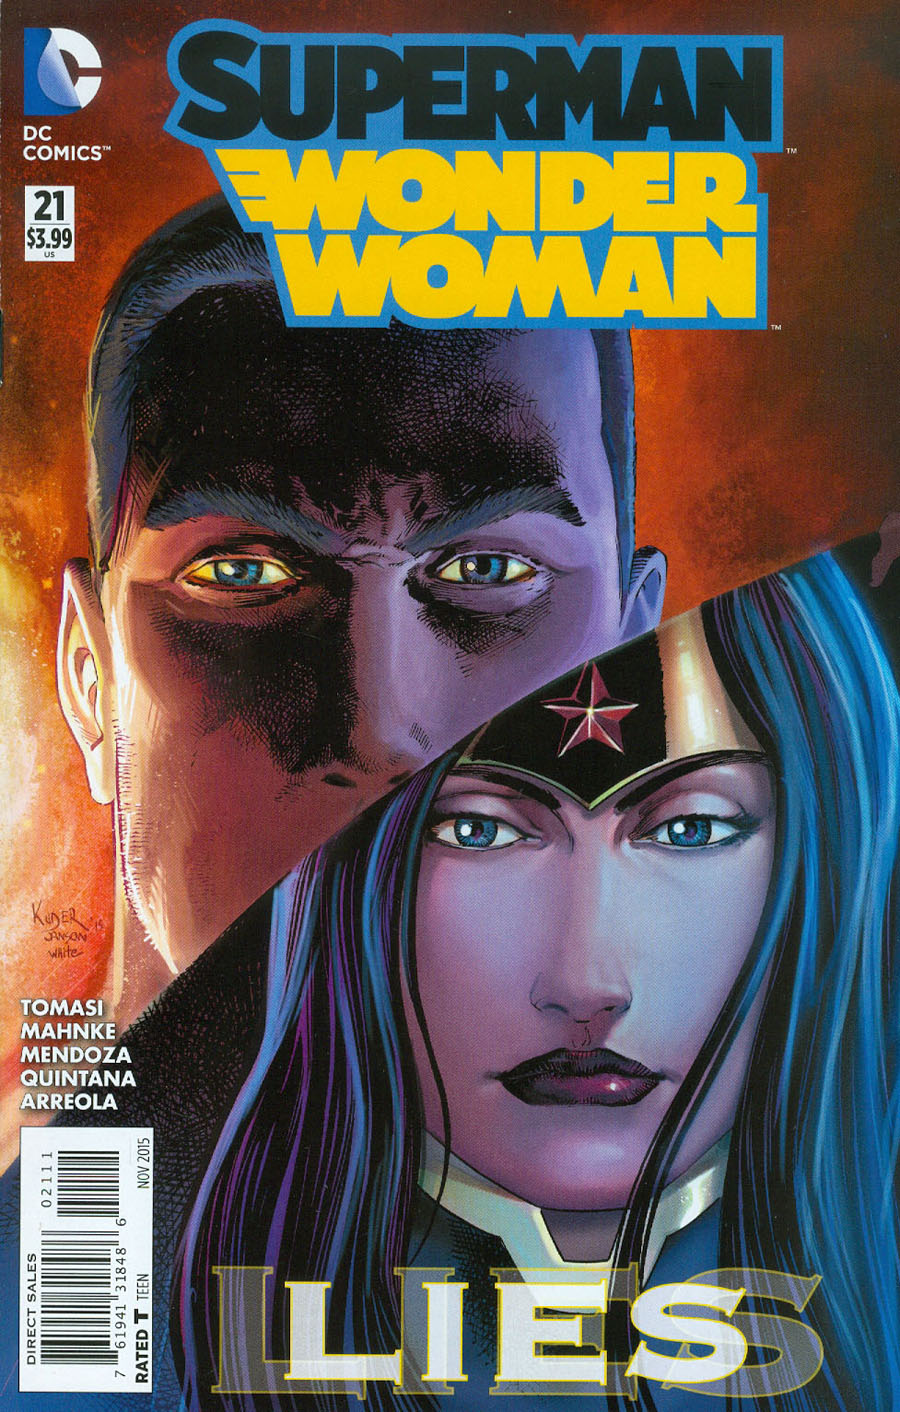 Superman Wonder Woman #21 Cover A Regular Aaron Kuder Cover (Truth Tie-In)